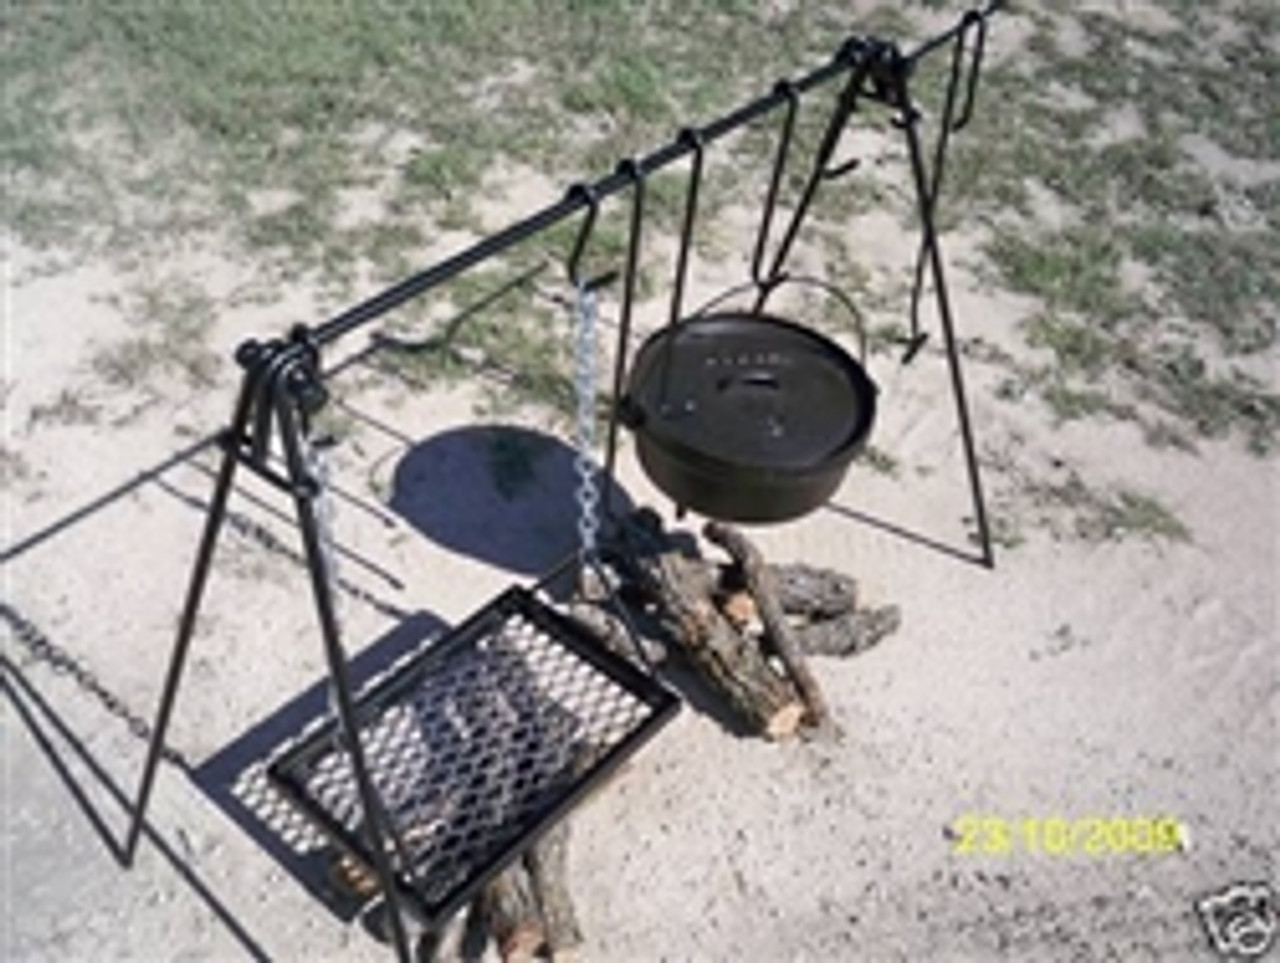 Dutch Oven & Grill Cook Set Plus Asado Cross | Free Shipping*